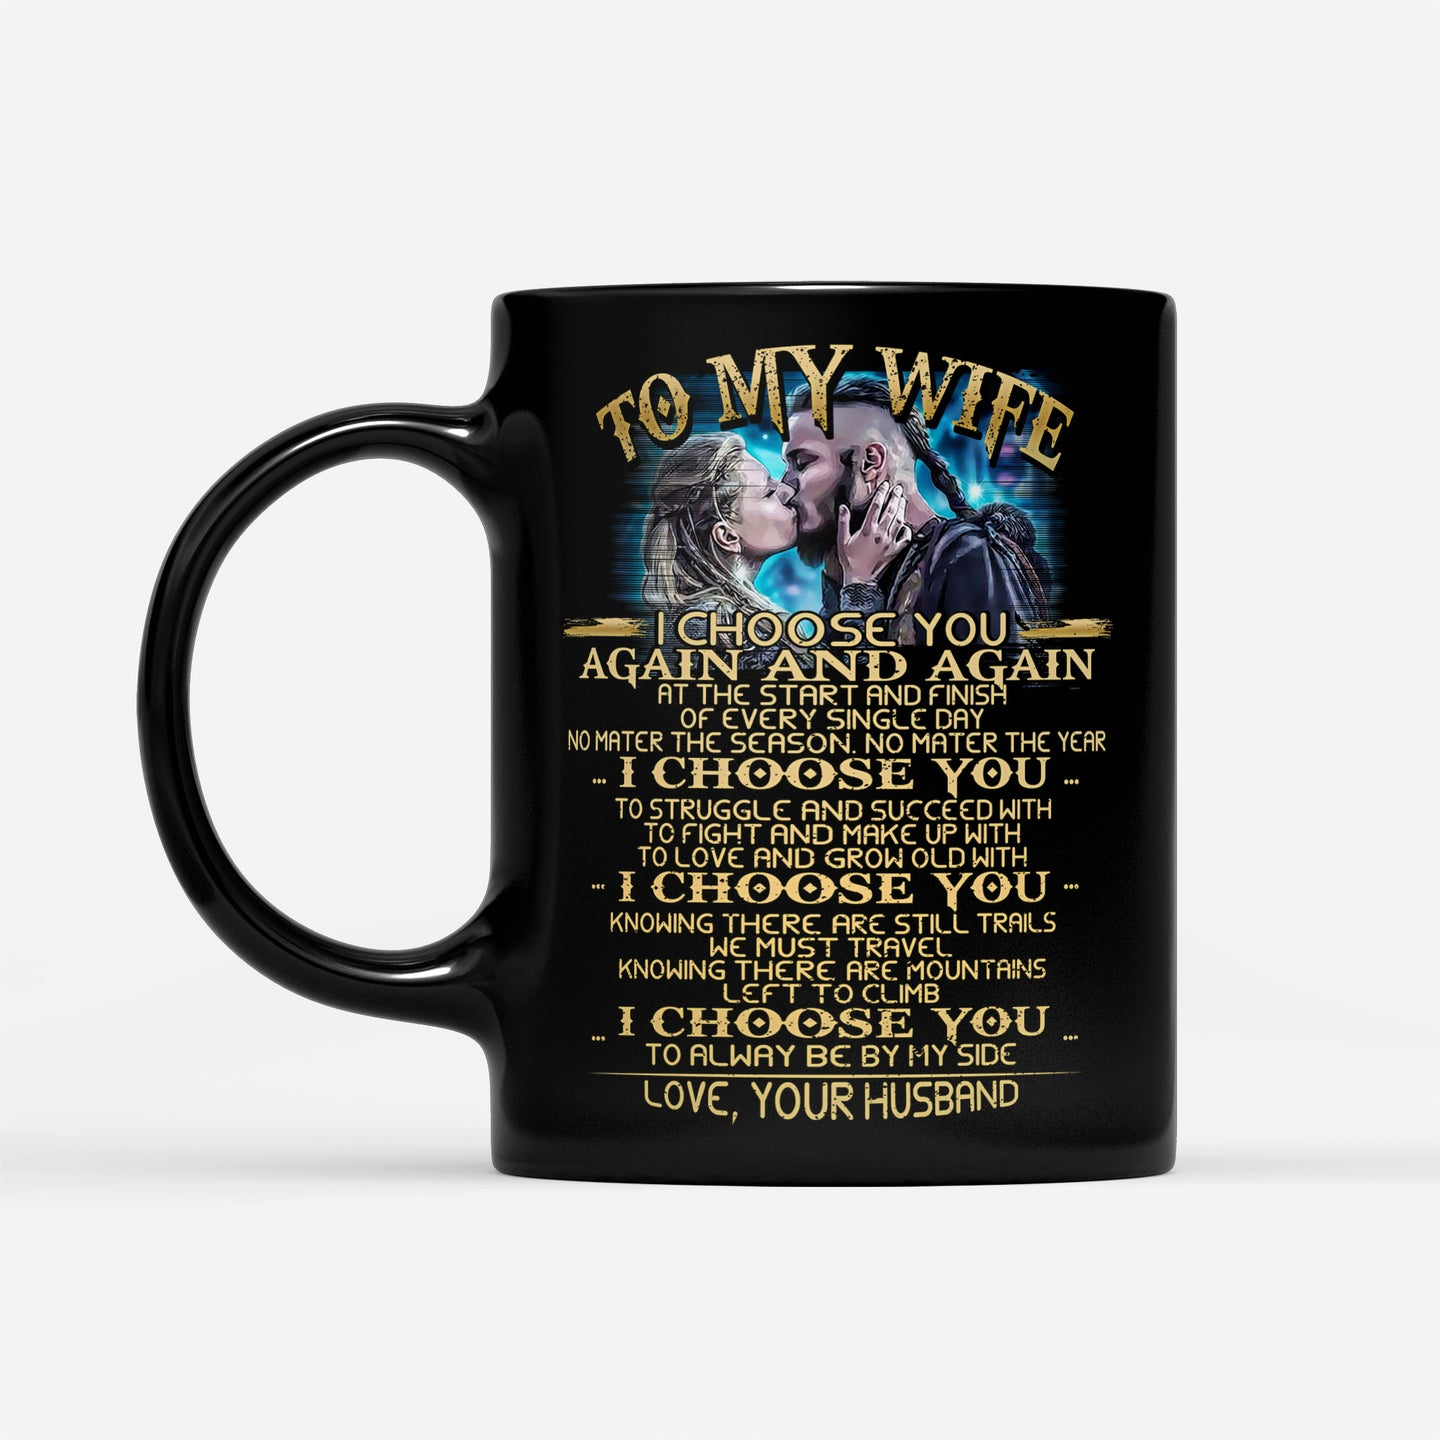 Wife Mug From Husband Valhalla Vikings Couples Quote Graphic Themed - Black Mug Drinkware 11oz